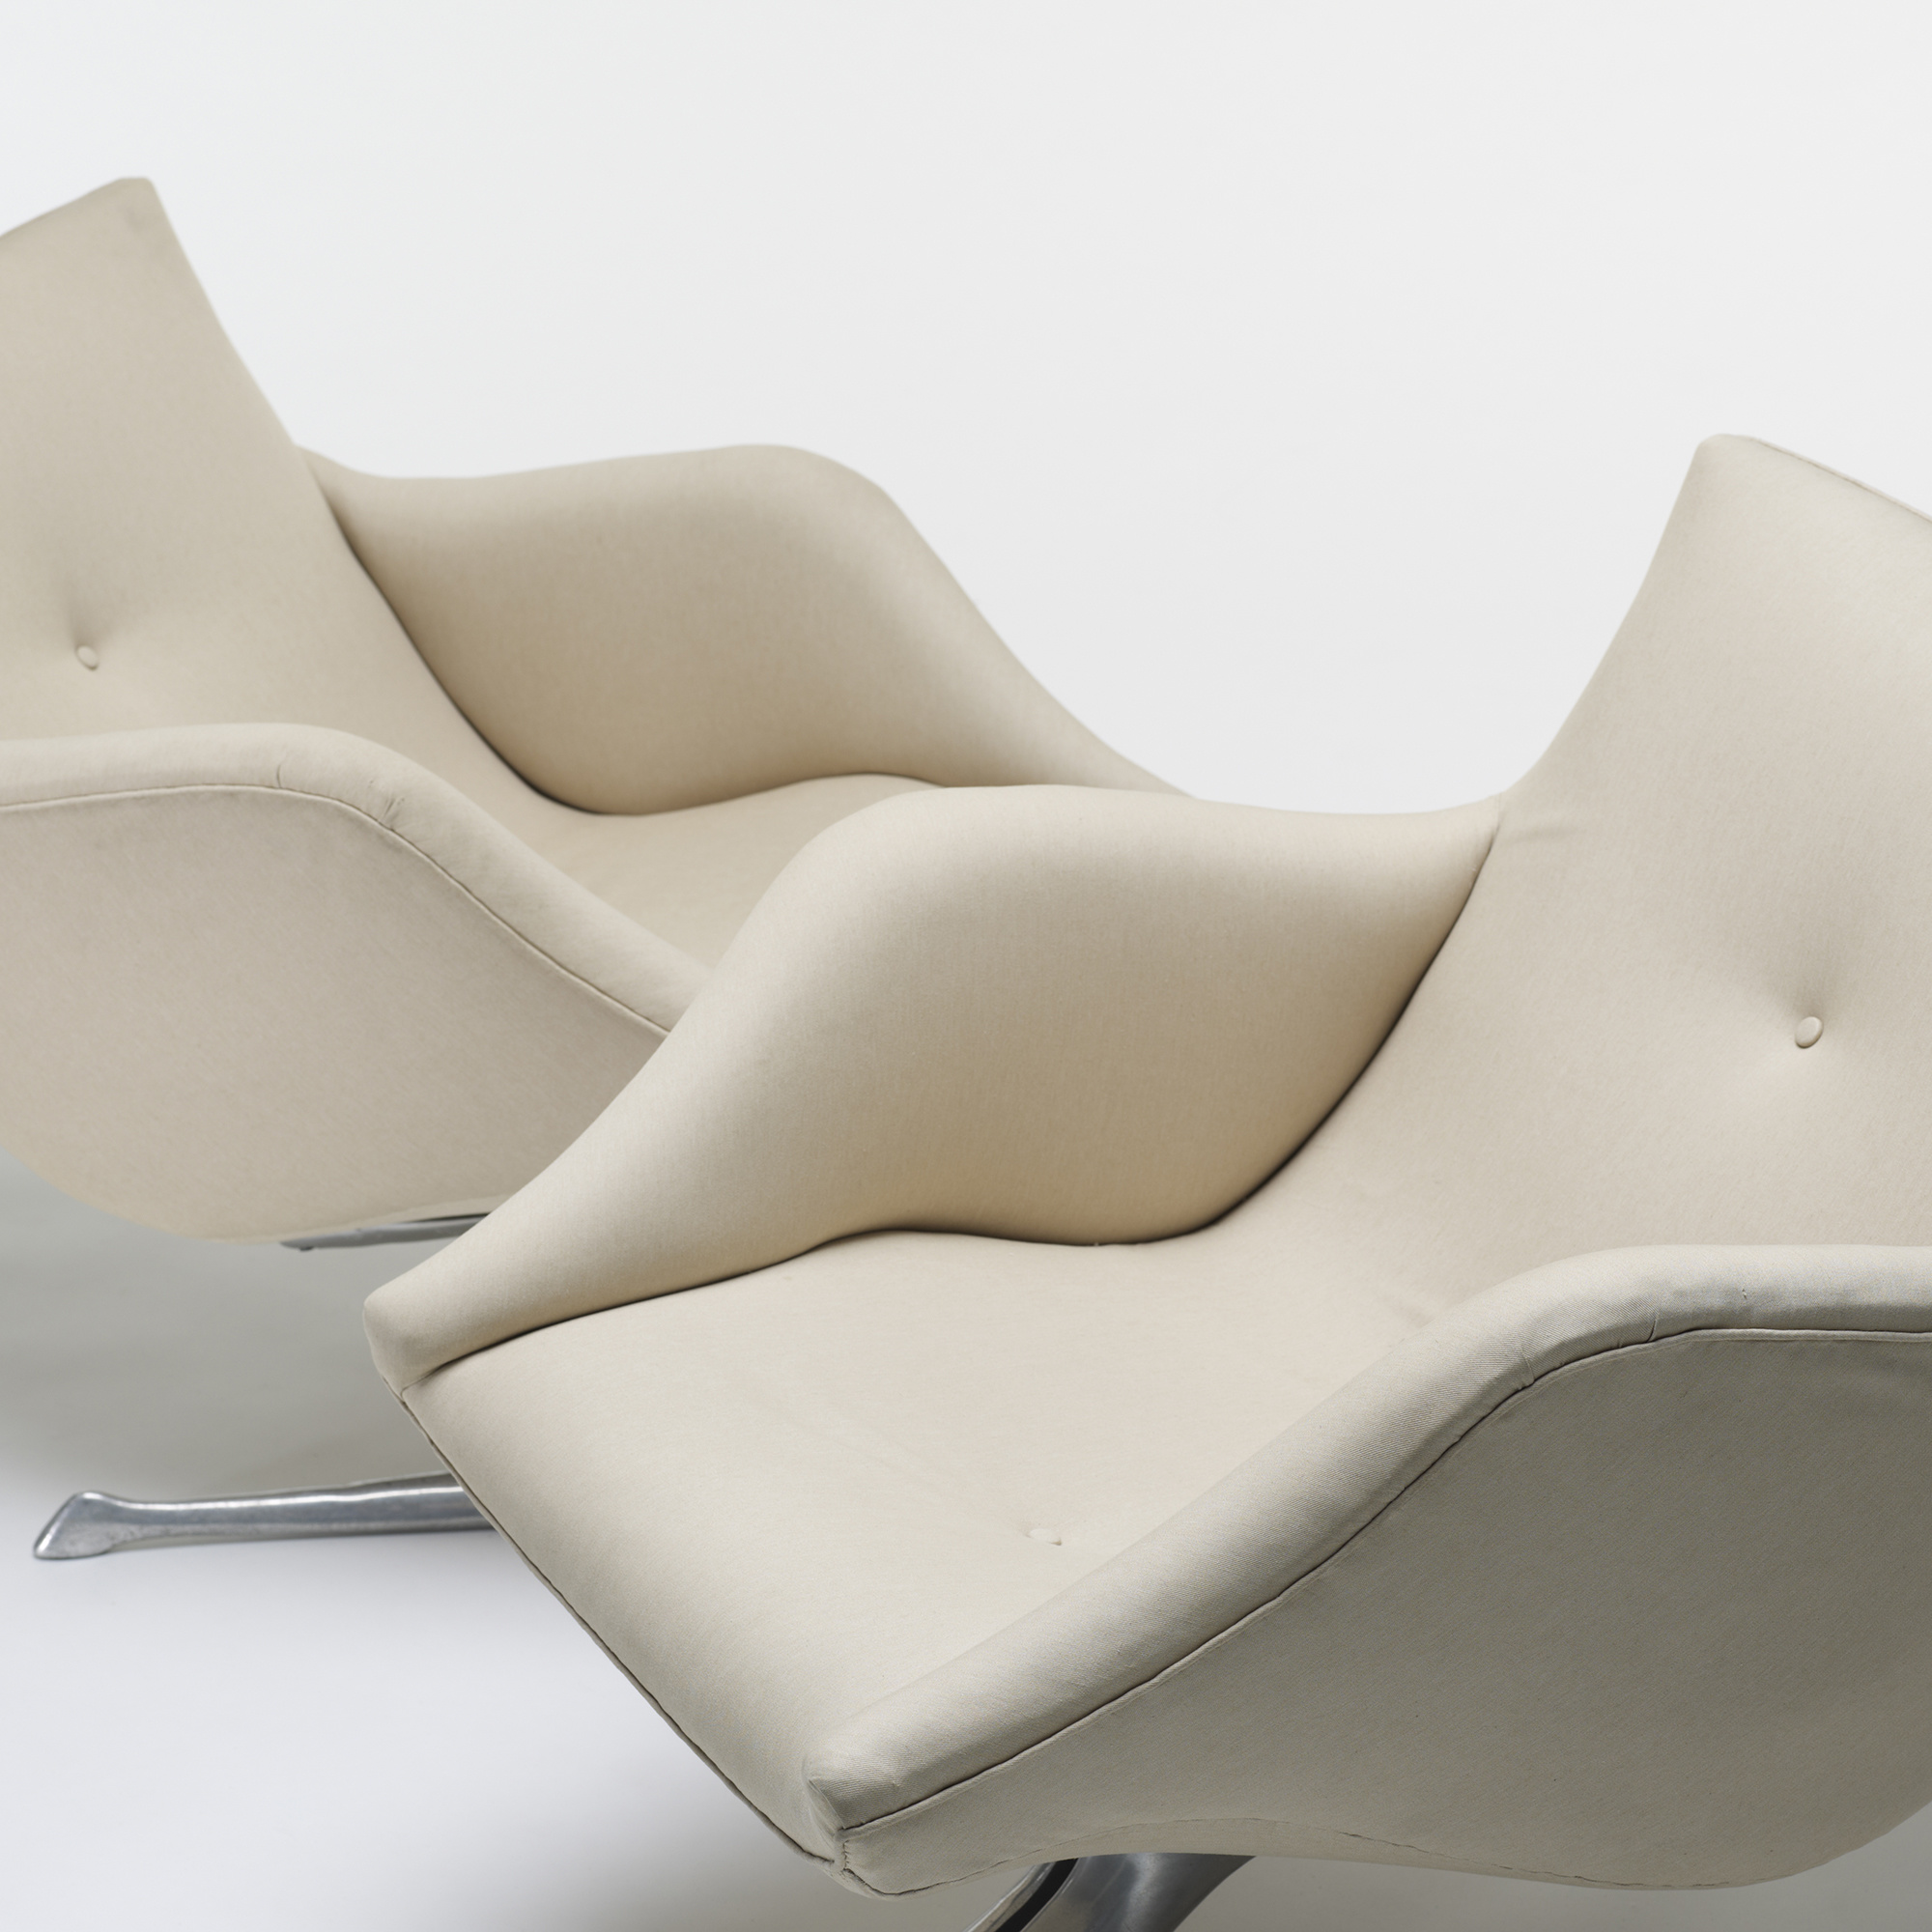 ... 396: Vladimir Kagan / Custom Unicorn Lounge Chairs, Pair (3 Of 3)